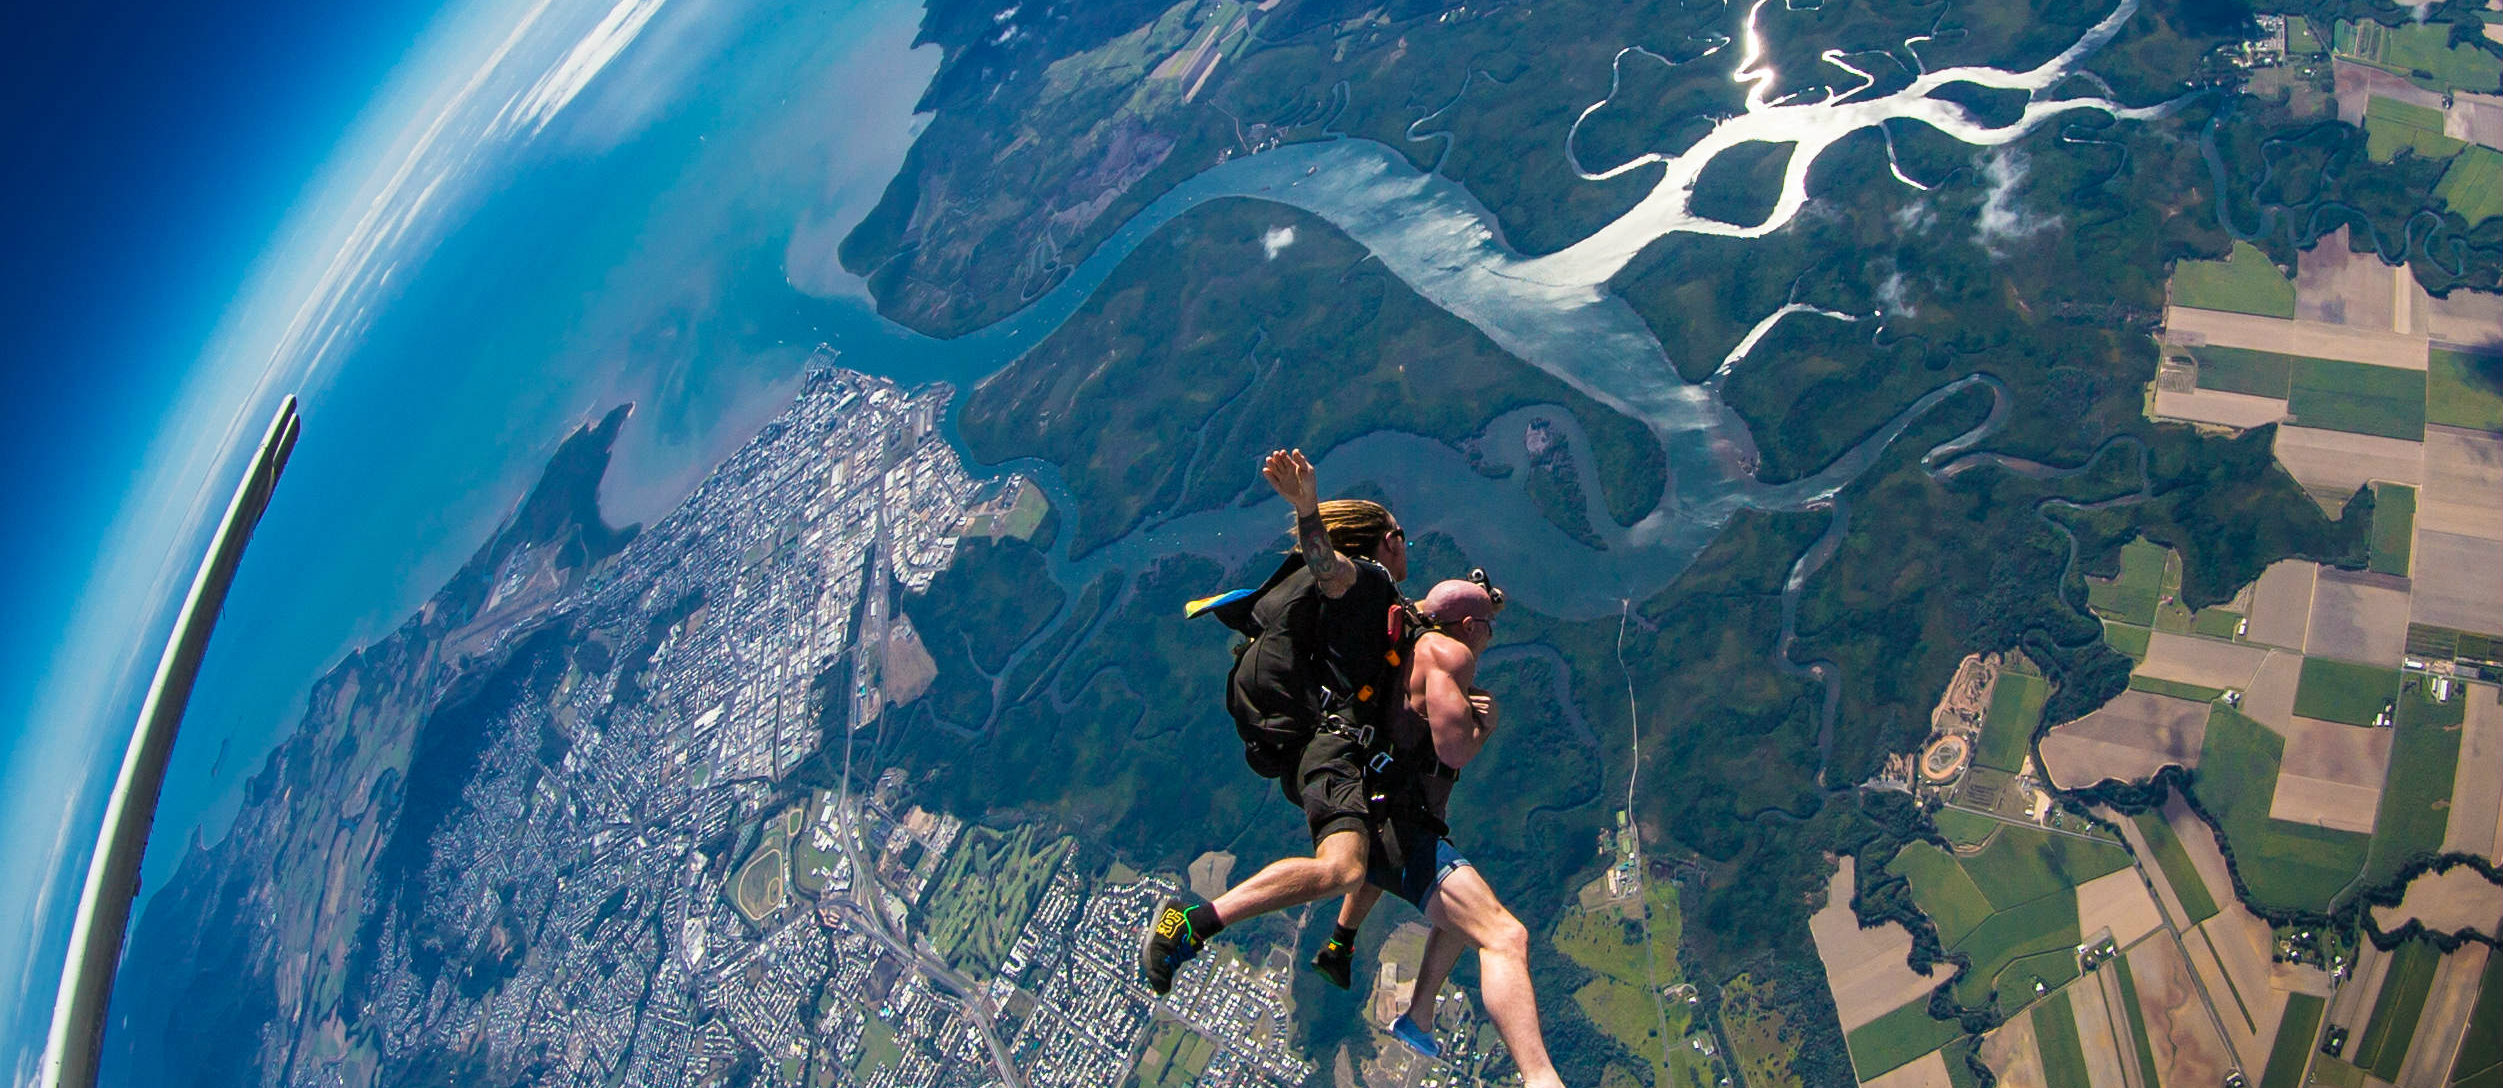 Cairns Tandem Skydive Experience